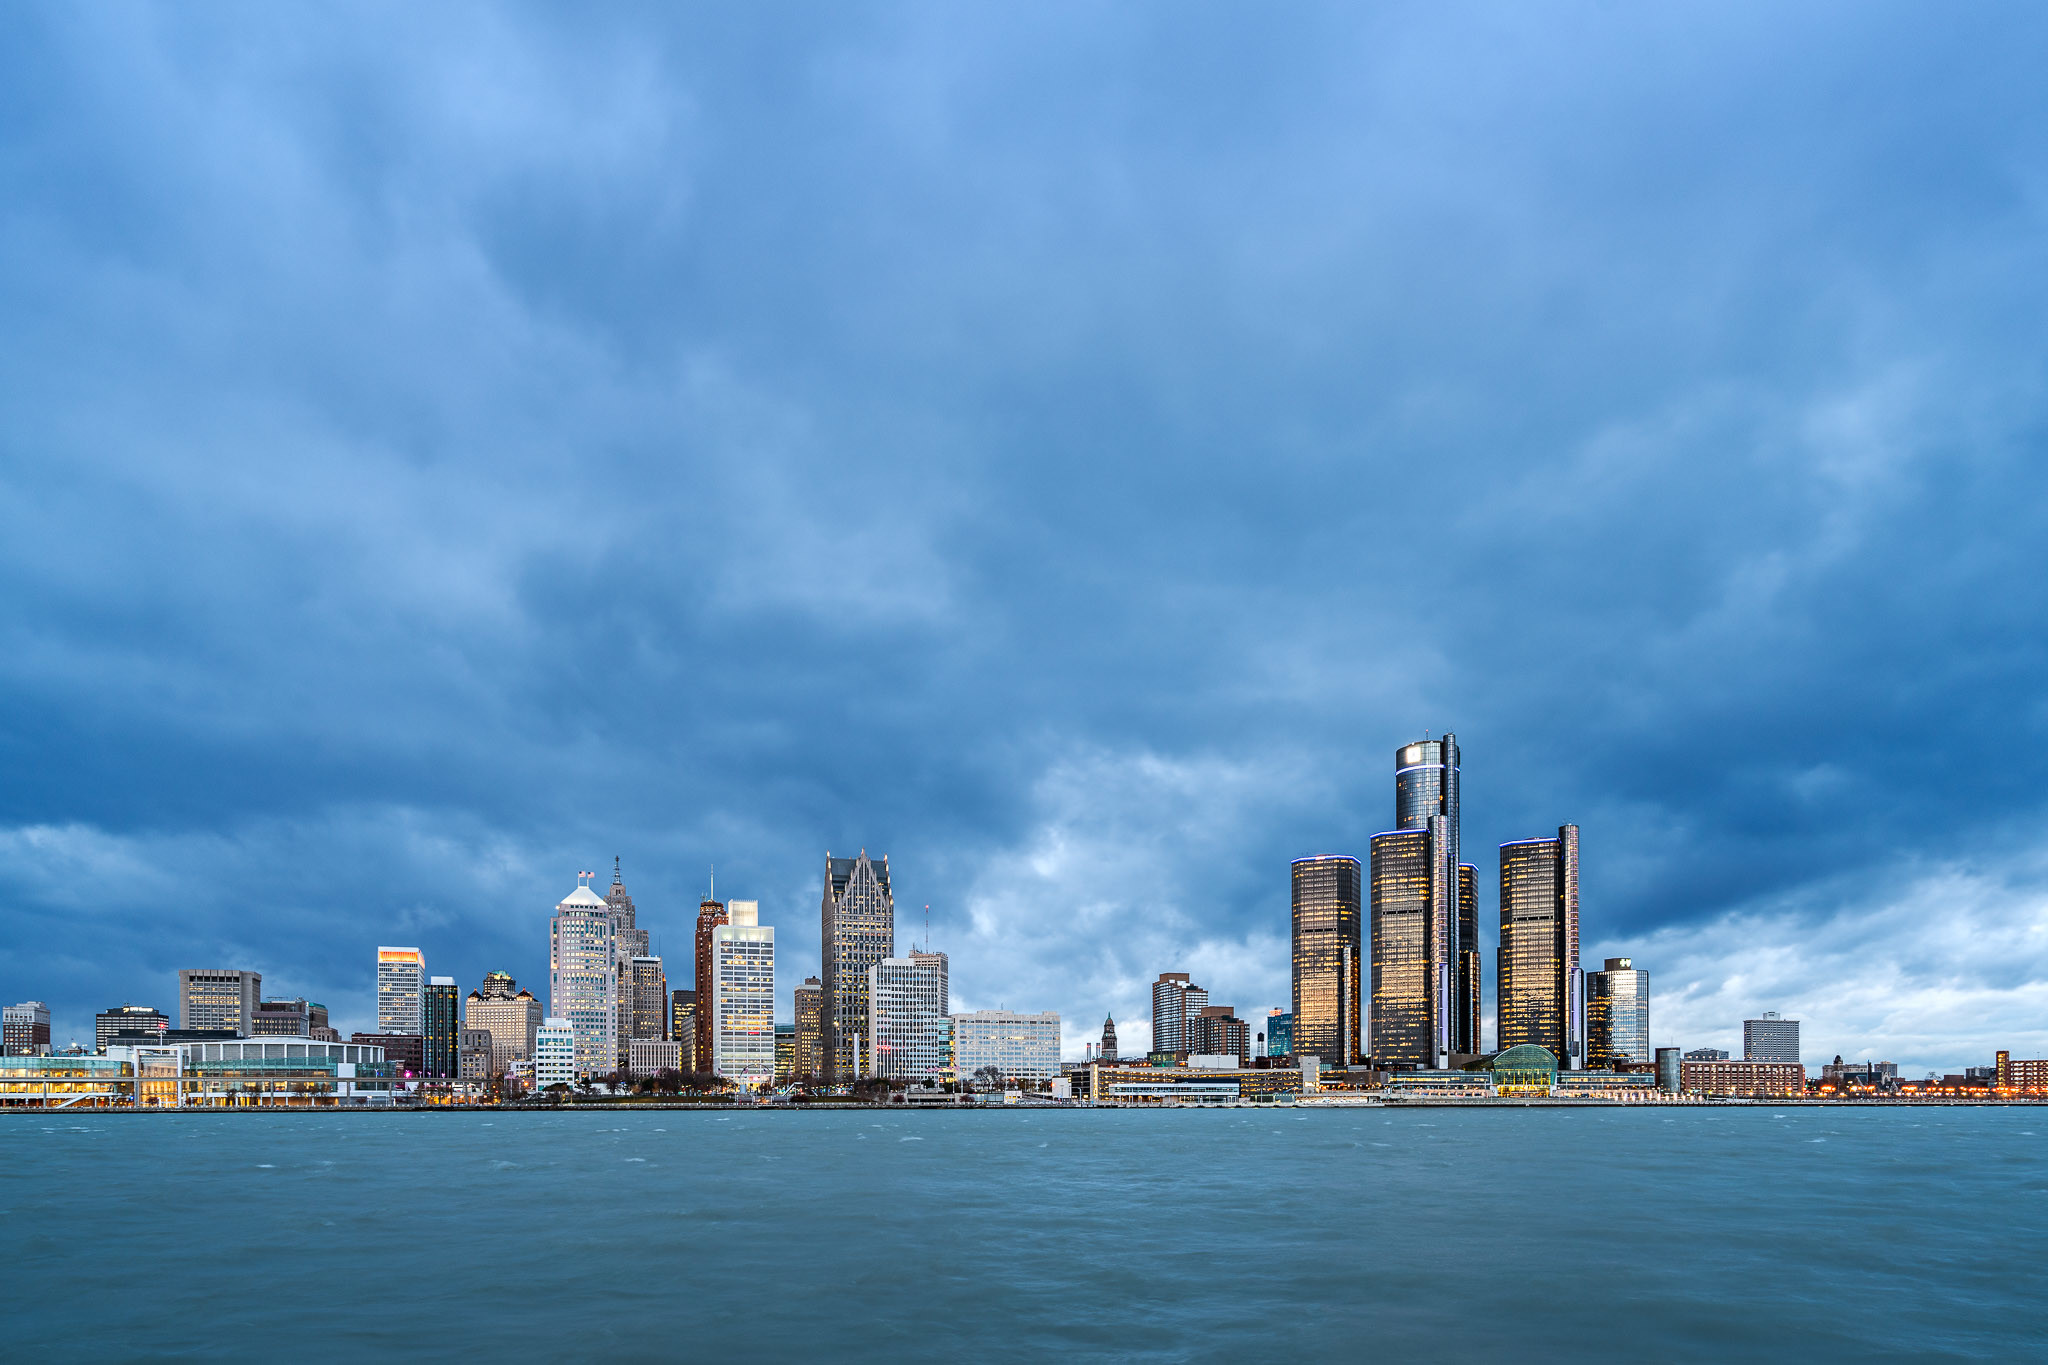 Res: 2048x1365, Shooting the Detroit skyline from Windsor, Canada